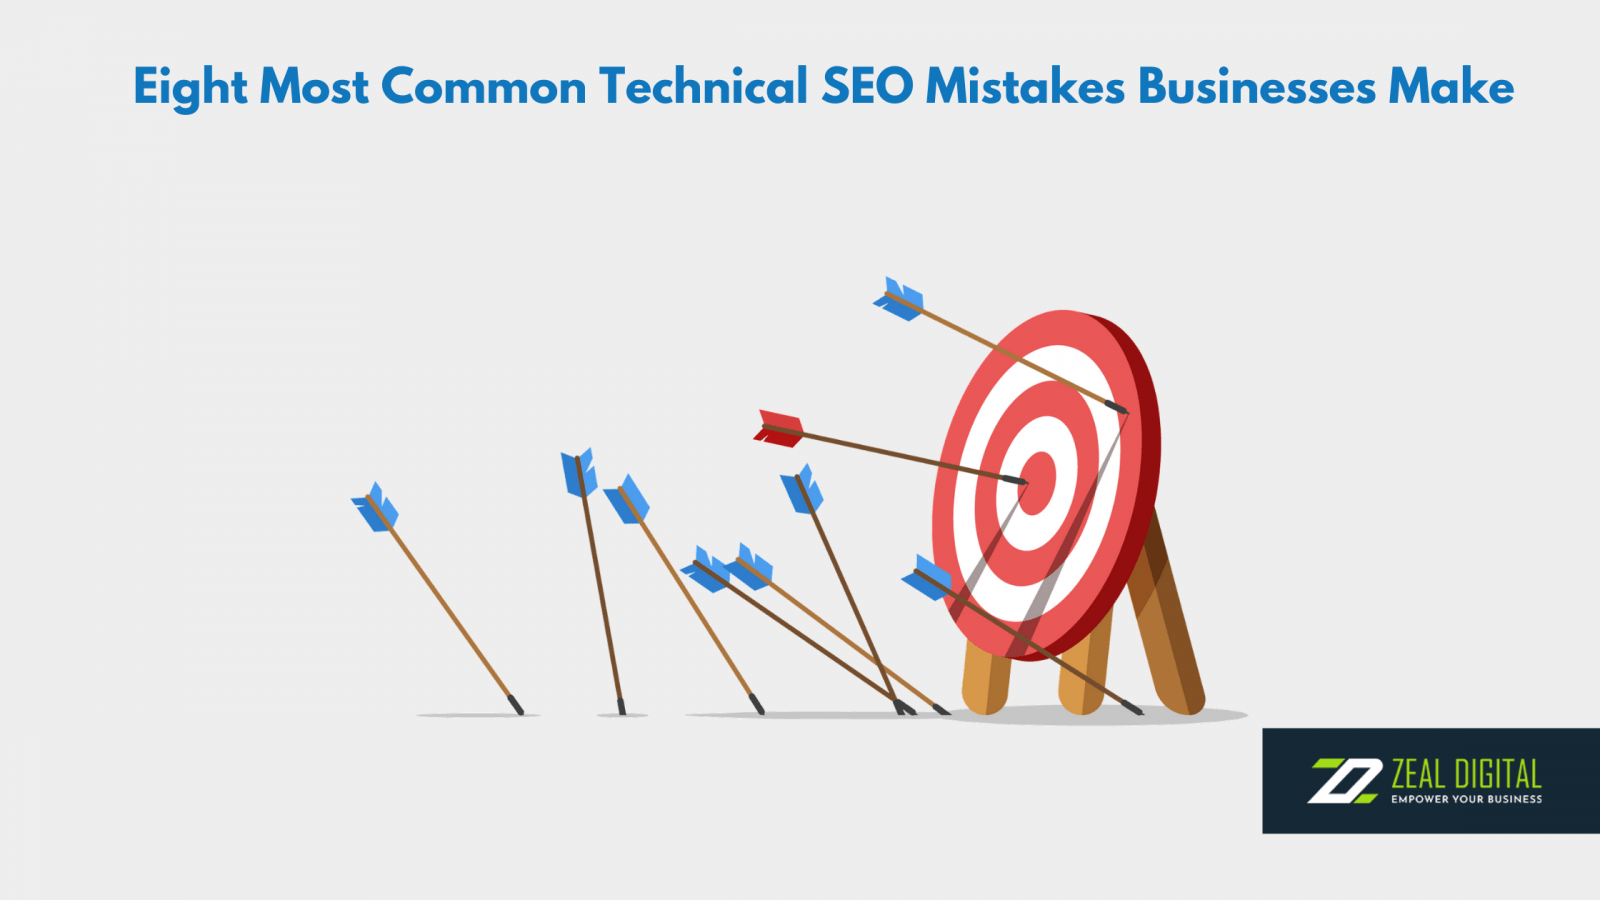 If your content follows the SEO practices, then the search engine will show your content on the top list when it is searched. Thus, the SEO services engage more traffic on the digital planform organically.